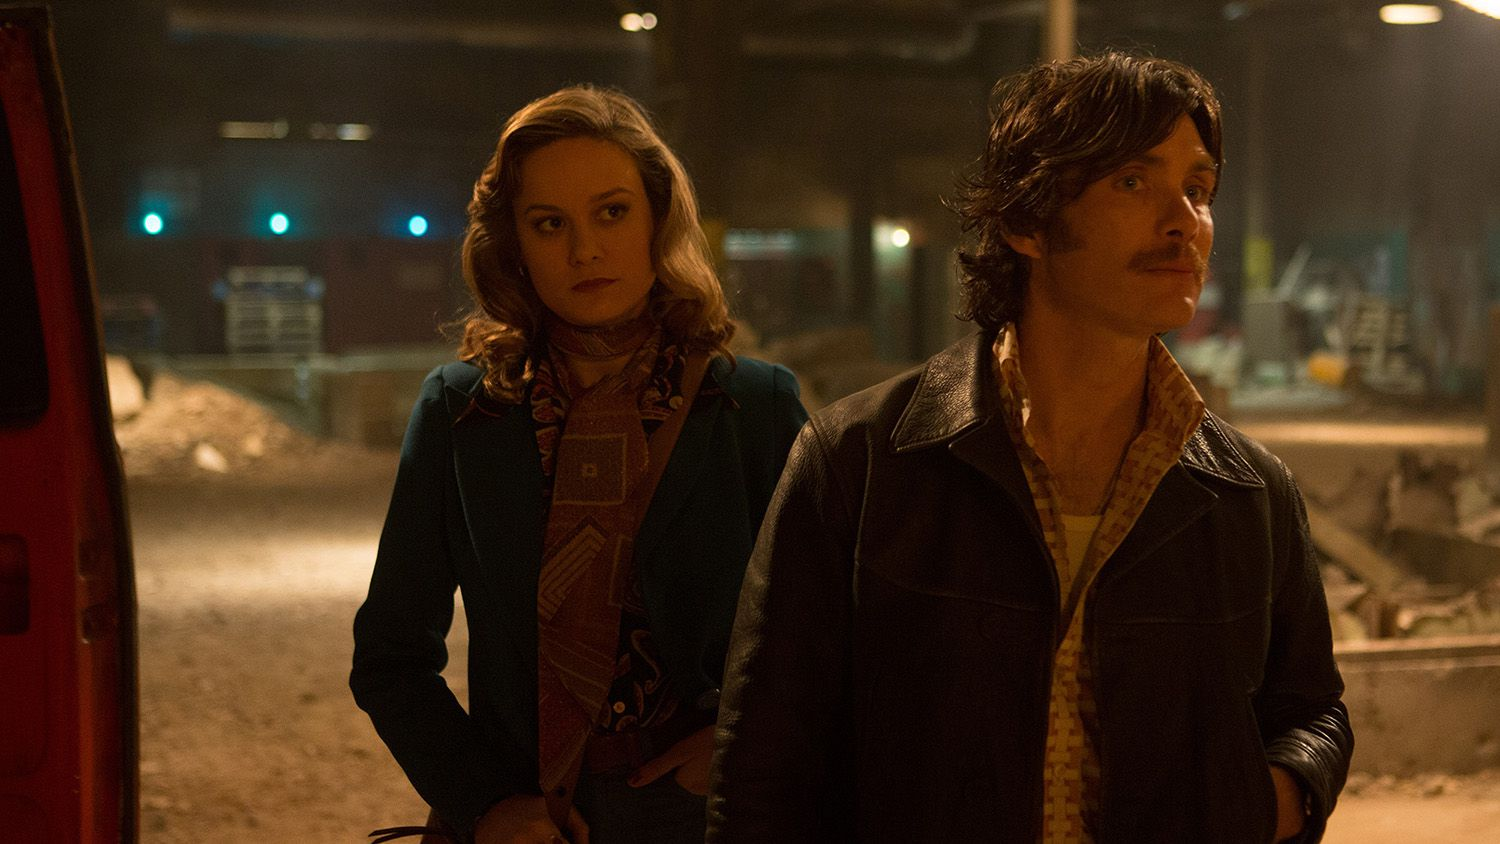 Once the guns start blazing in Ben Wheatley's Free Fire, they don't really stop. Prolific British director Ben Wheatley's massively entertaining recovery from the messy J.G. Ballard adaptation High-Rise is […]